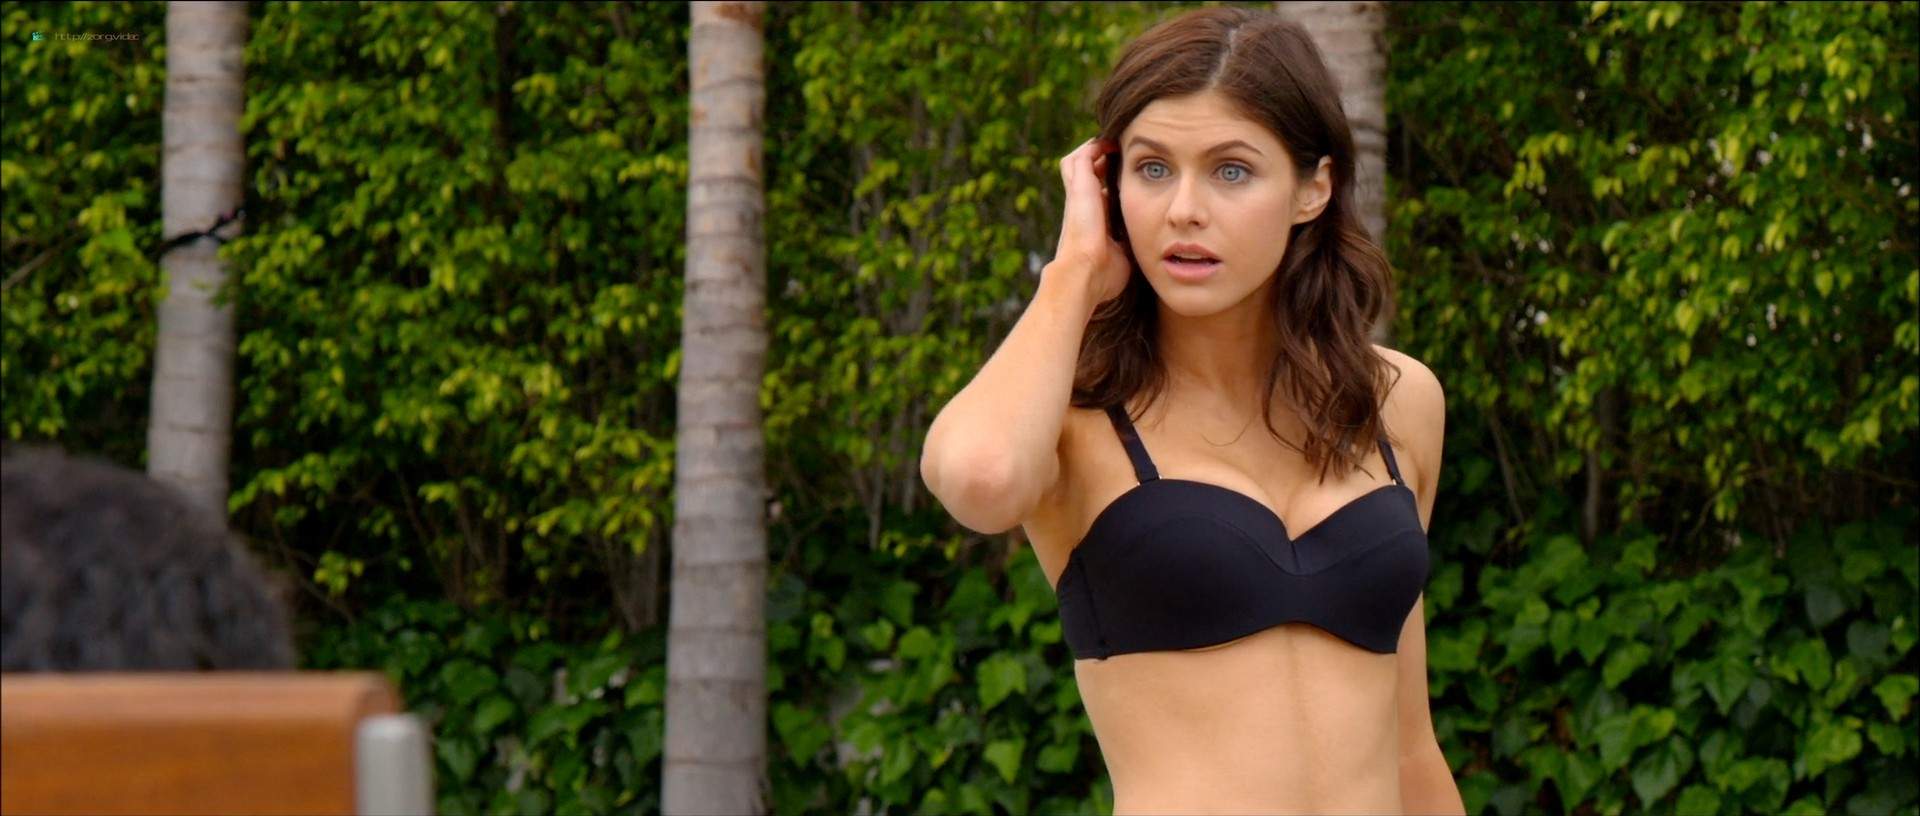 Alexandra Daddario hot busty in a bikini - Why Women Kill (2019) s1e1 HD 1080p Web (7)